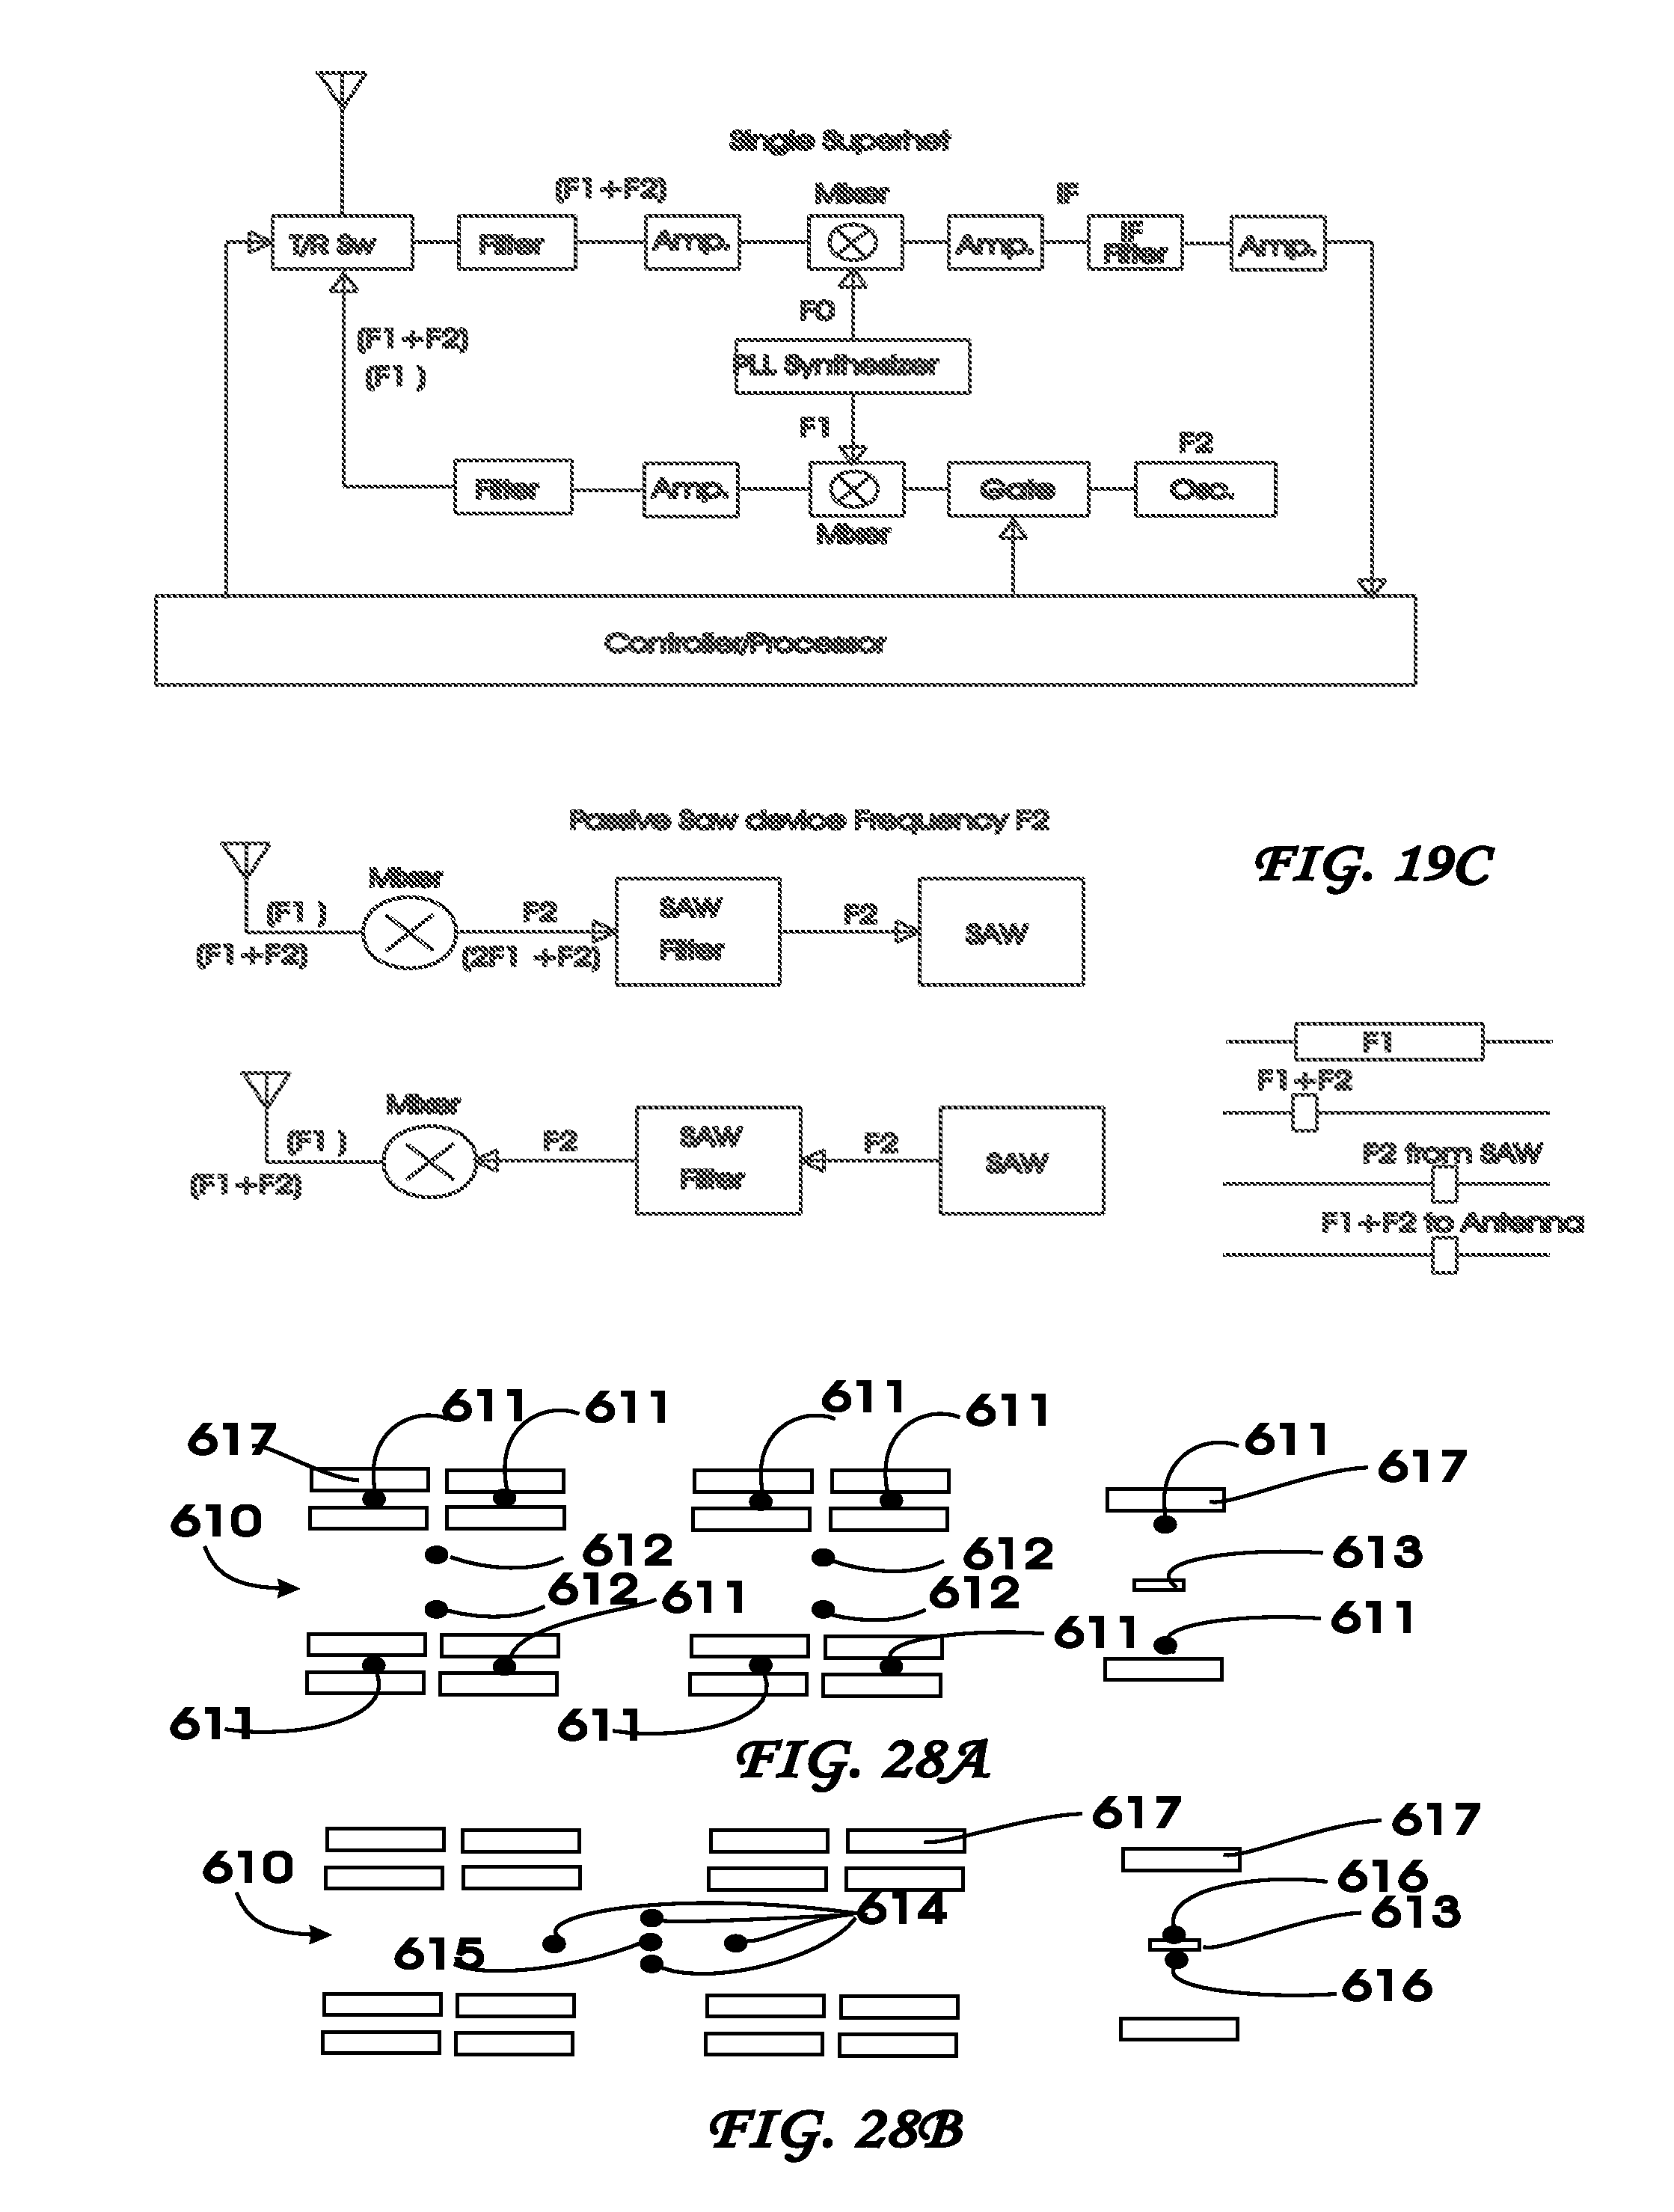 Patente Us20060284839 Vehicular Steering Wheel With Input Device For Diagram Door Wiring Opener Pv 612 Patent Drawing